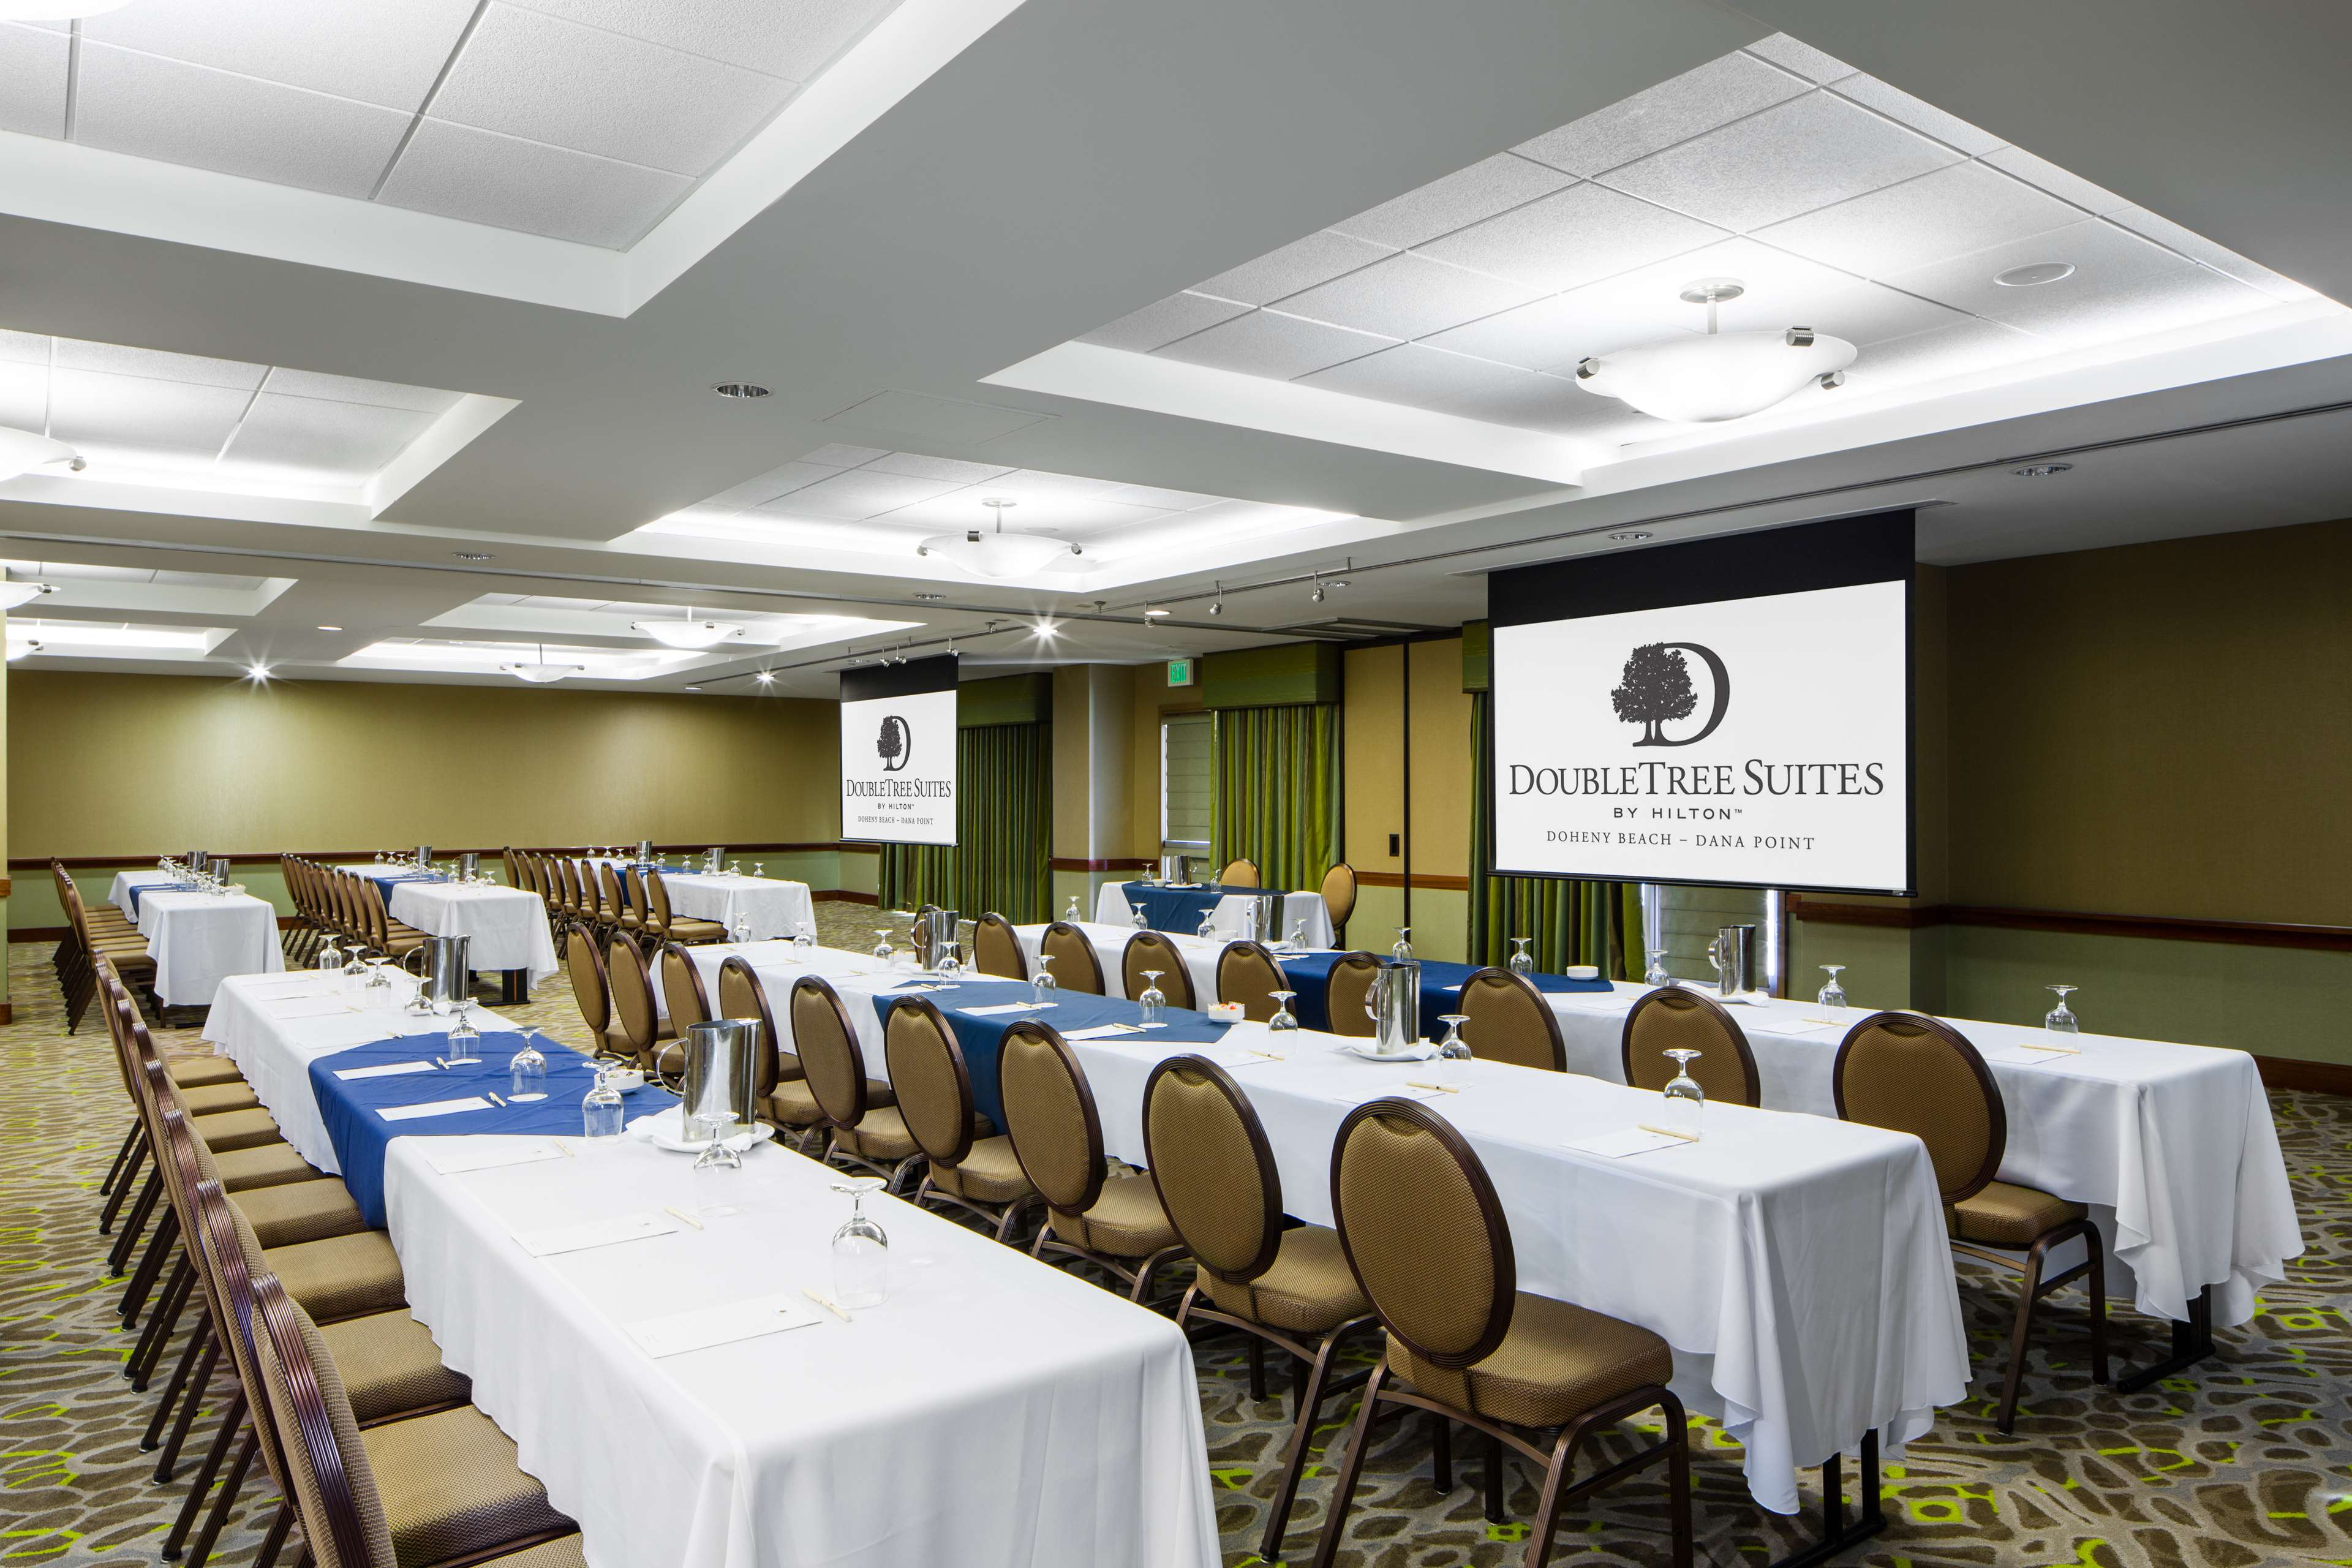 DoubleTree Suites by Hilton Hotel Doheny Beach - Dana Point image 21